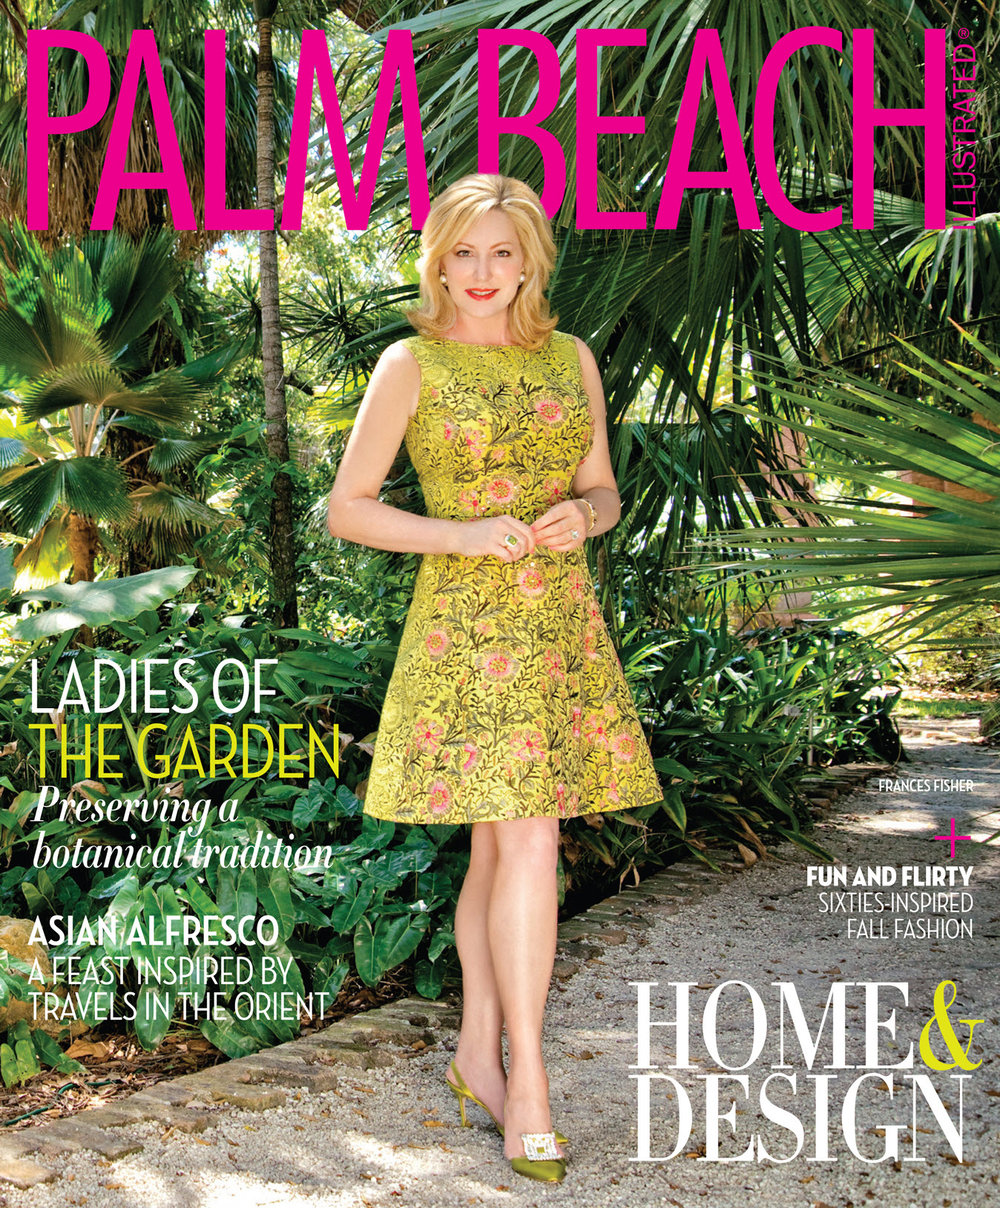 Palm Beach Illustrated Oct 2014